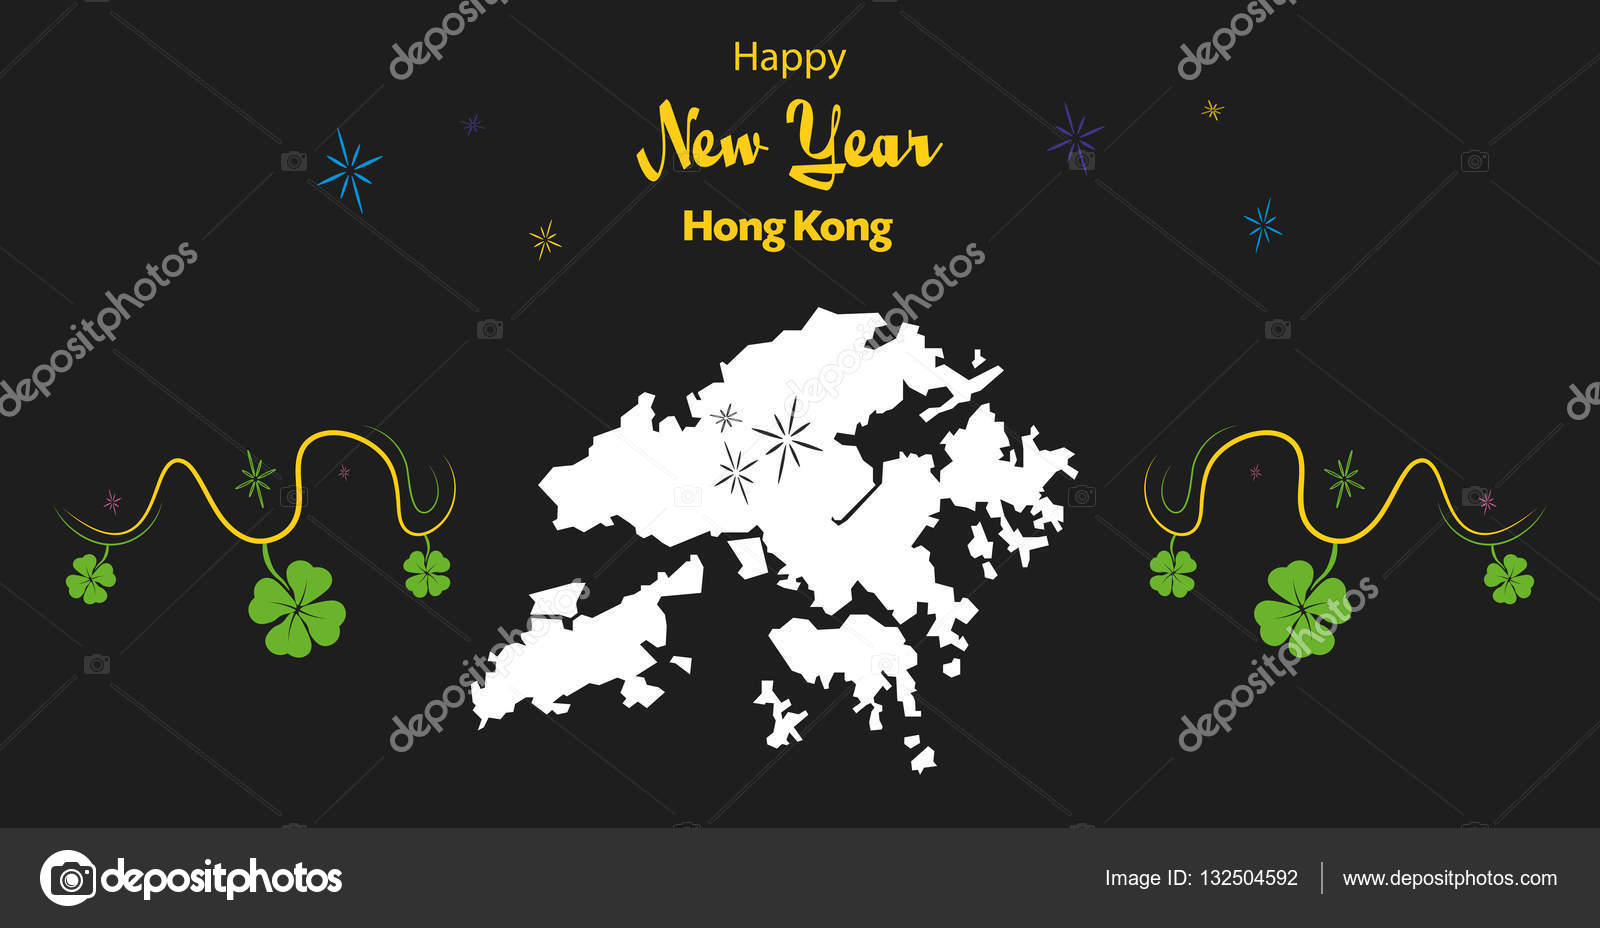 happy new year theme with map of hong kong stock vector